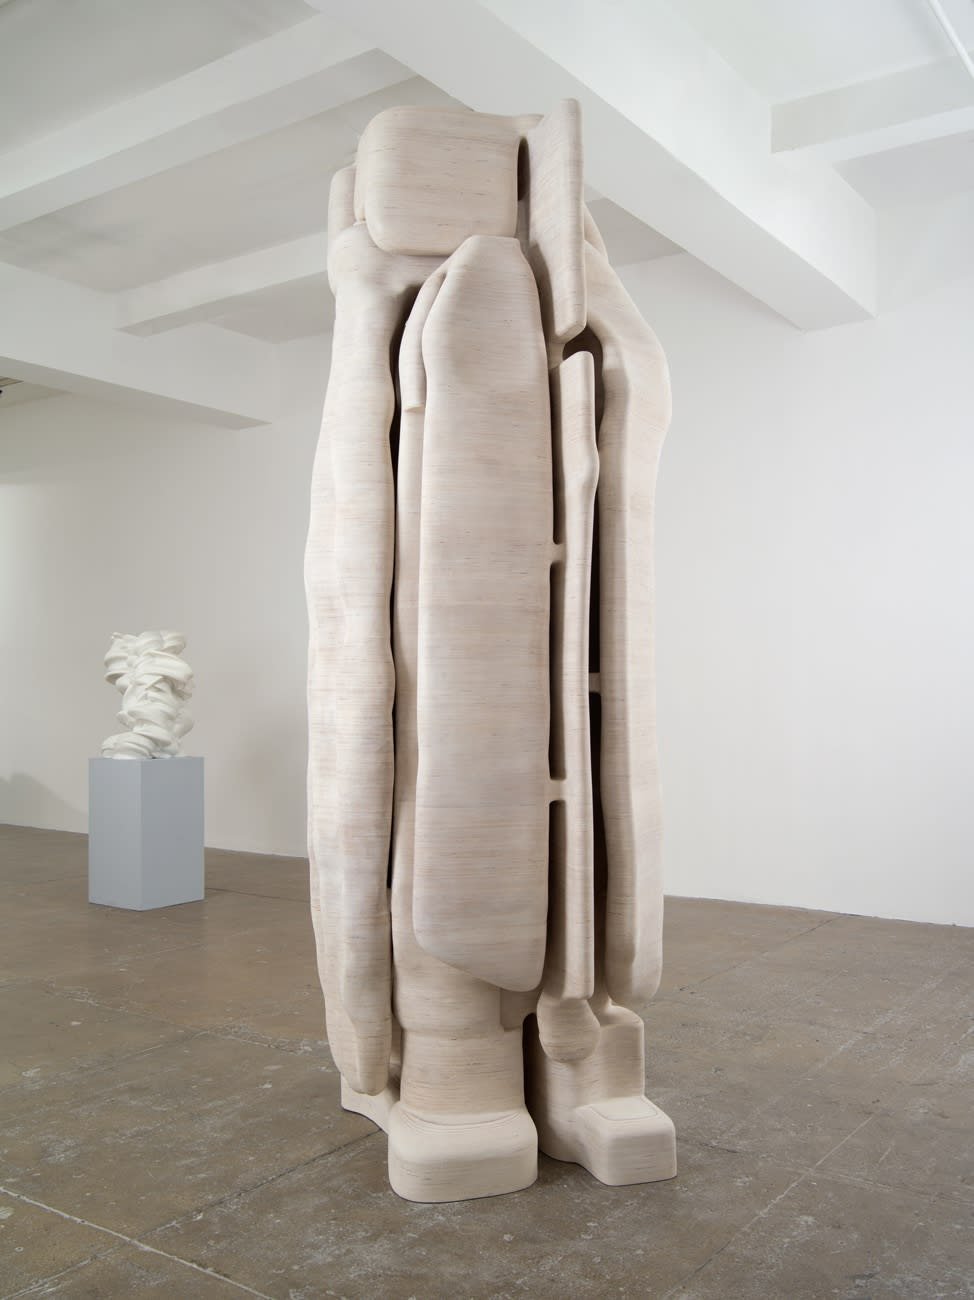 On the left sits a white abstract sculpture on a pedestal; central is a large, beige, vertical abstract sculpture.